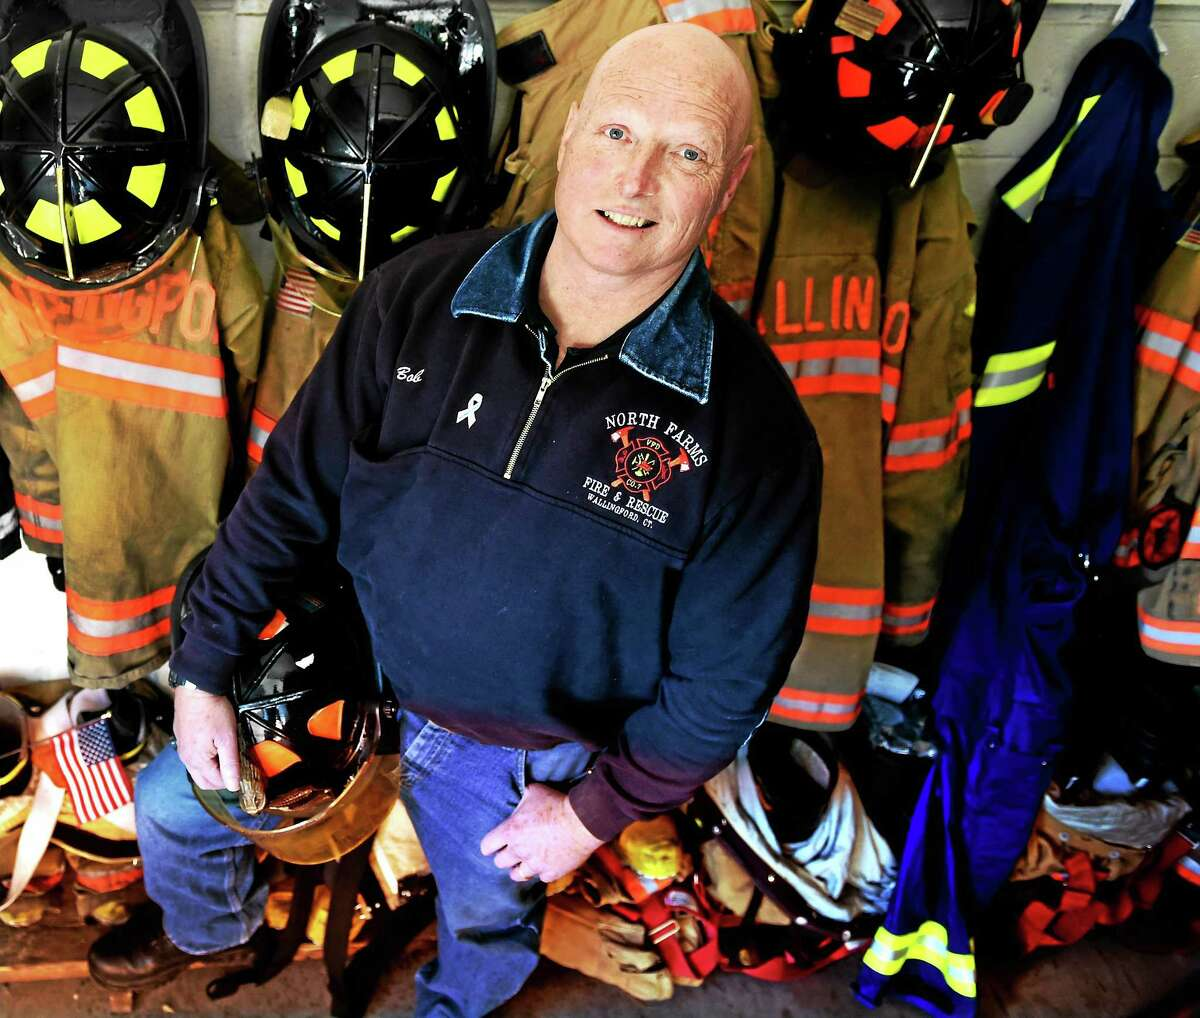 North Farms Volunteer Fire Department of Wallingford firefighter and EMT Robert Huebner at the fire station Monday. Huebner is a male breast cancer survivor. This week is Male Breast Cancer Awareness Week.